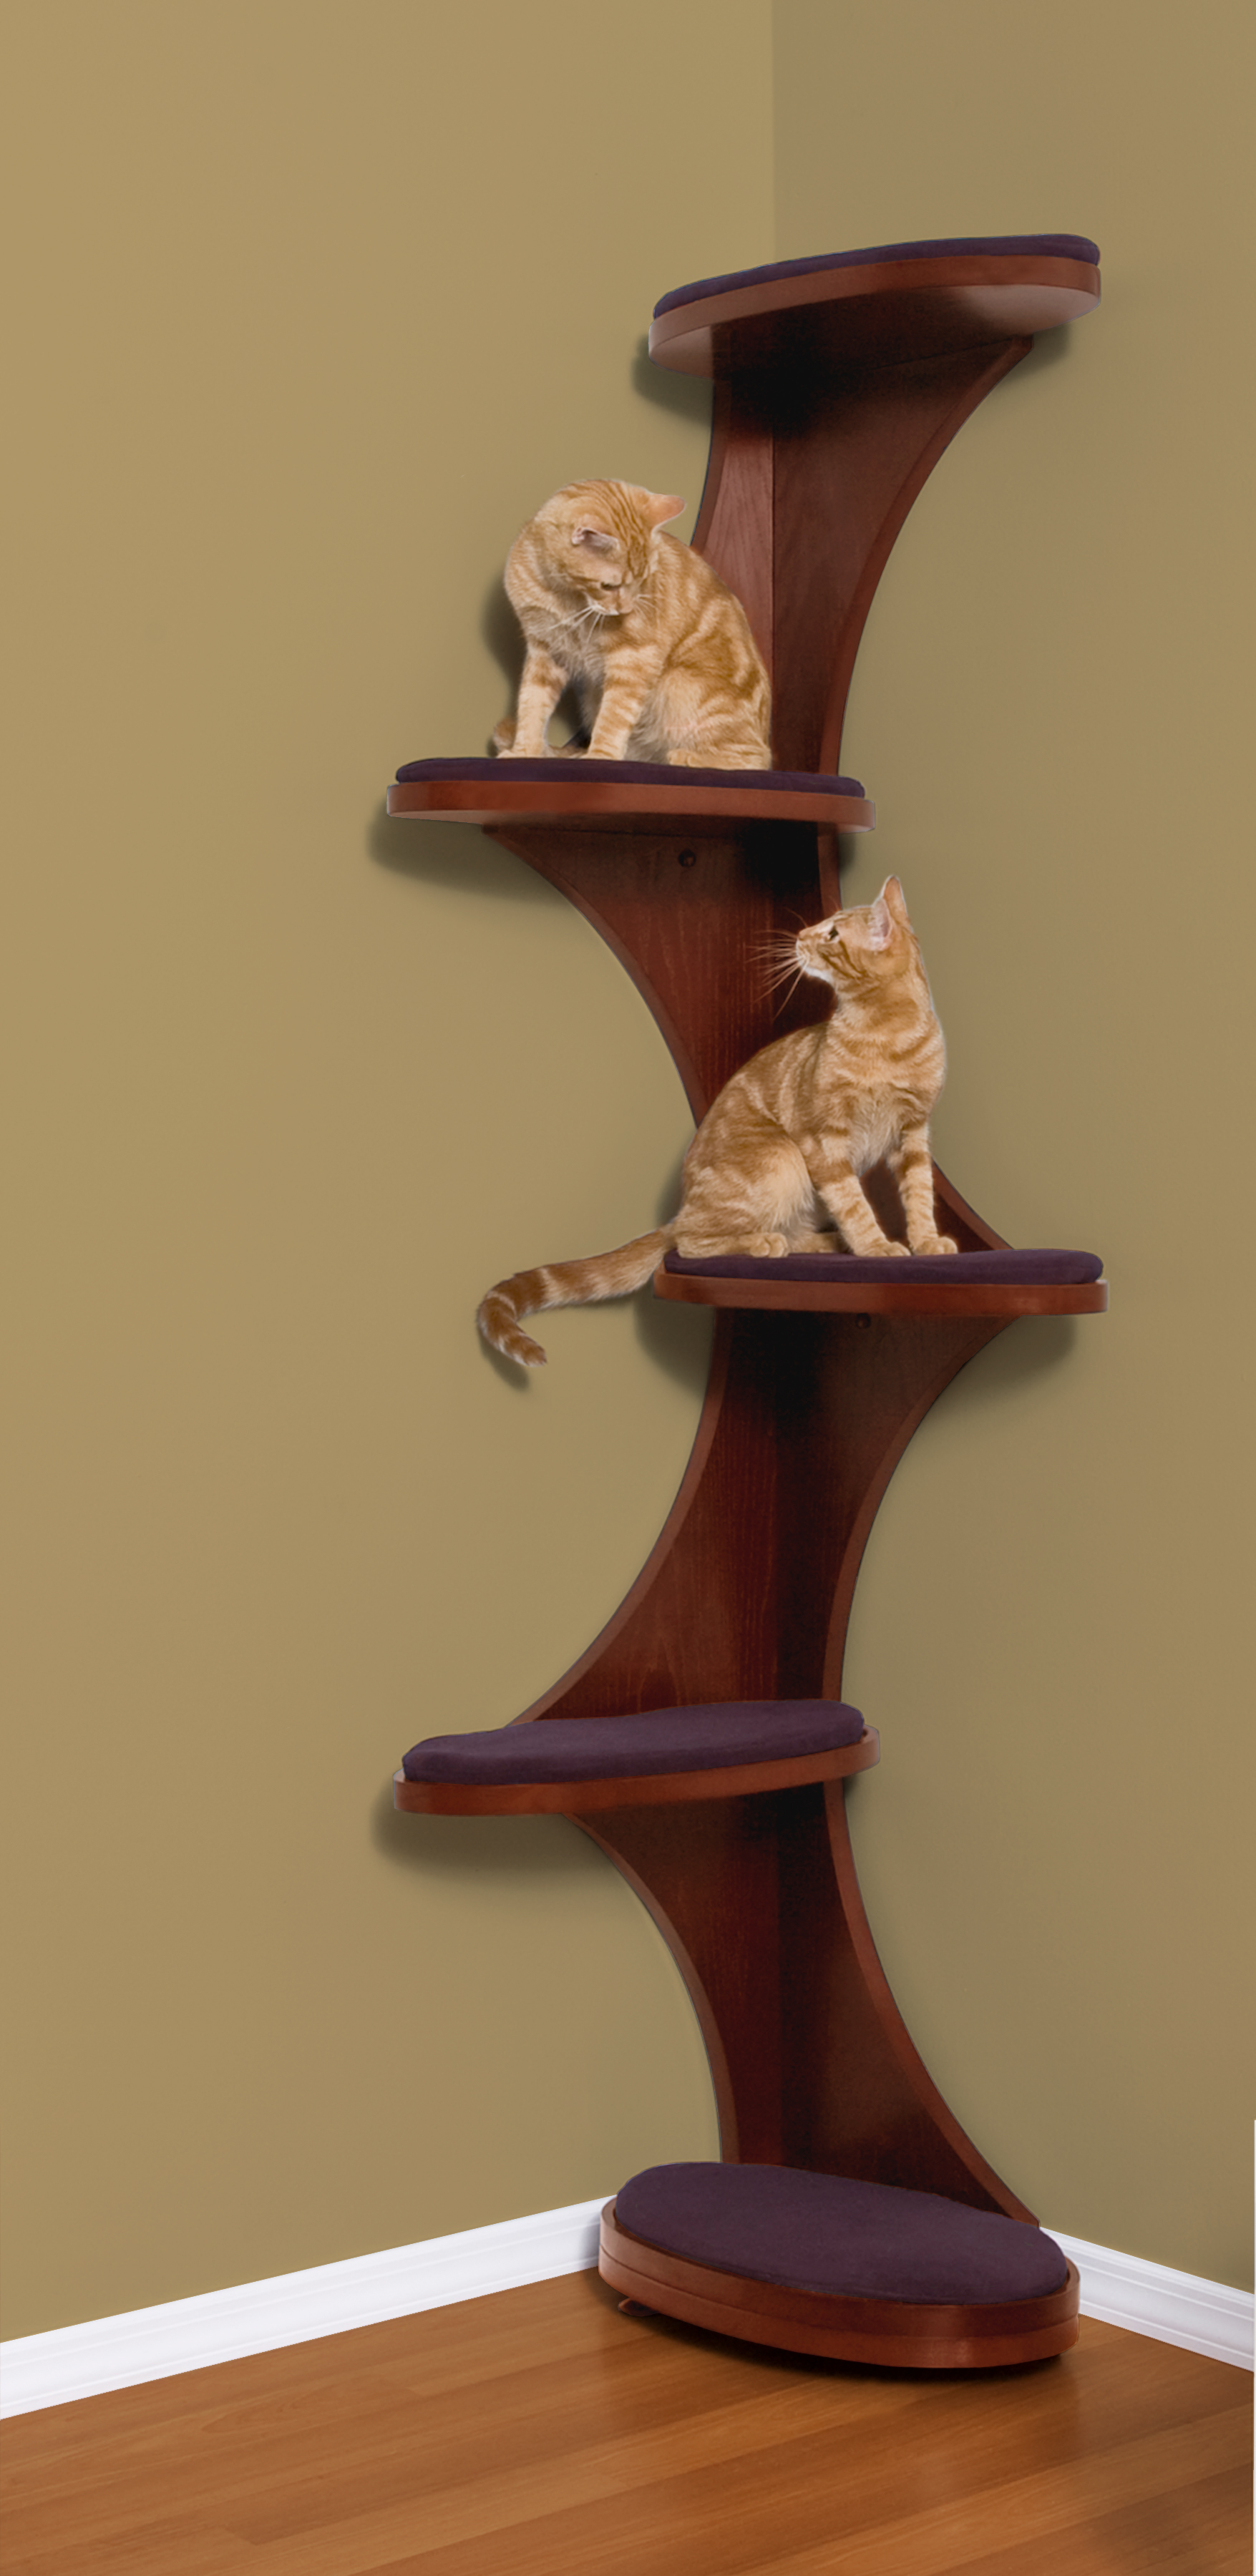 Modern cat tree furniture images for Bookshelf cat tower